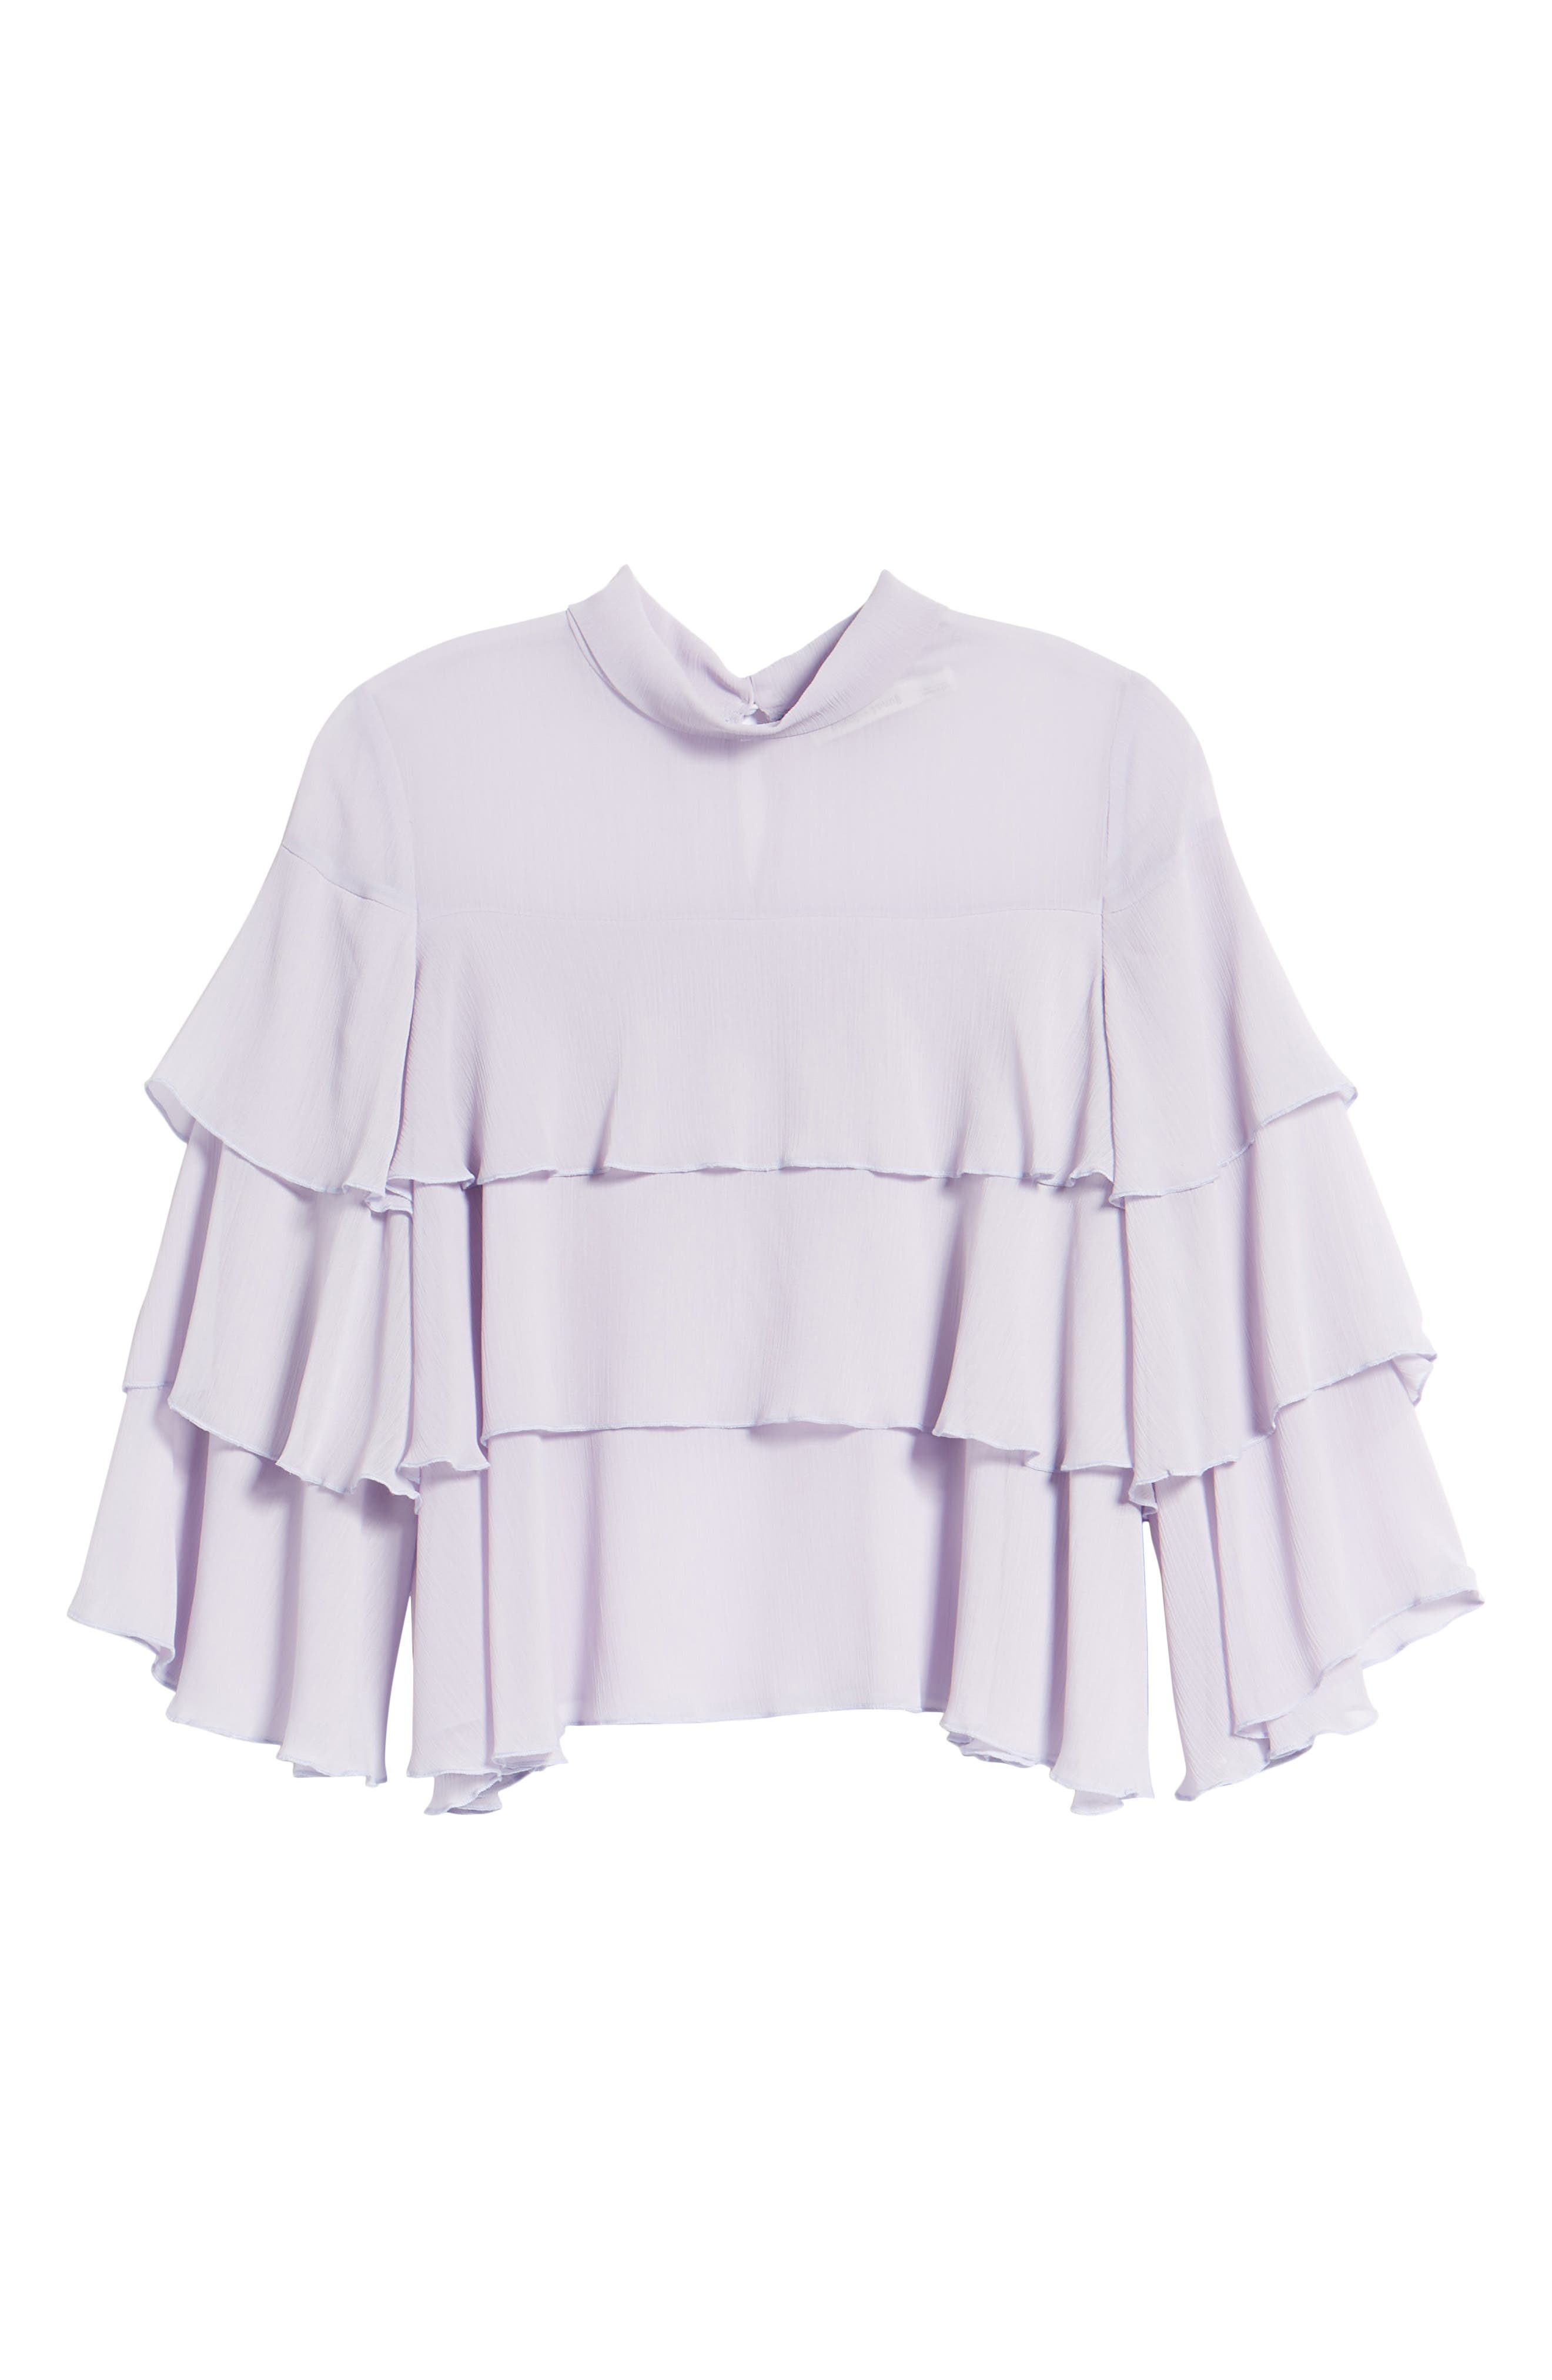 Bishop + Young Tiered Ruffle Blouse,                             Alternate thumbnail 7, color,                             LILAC